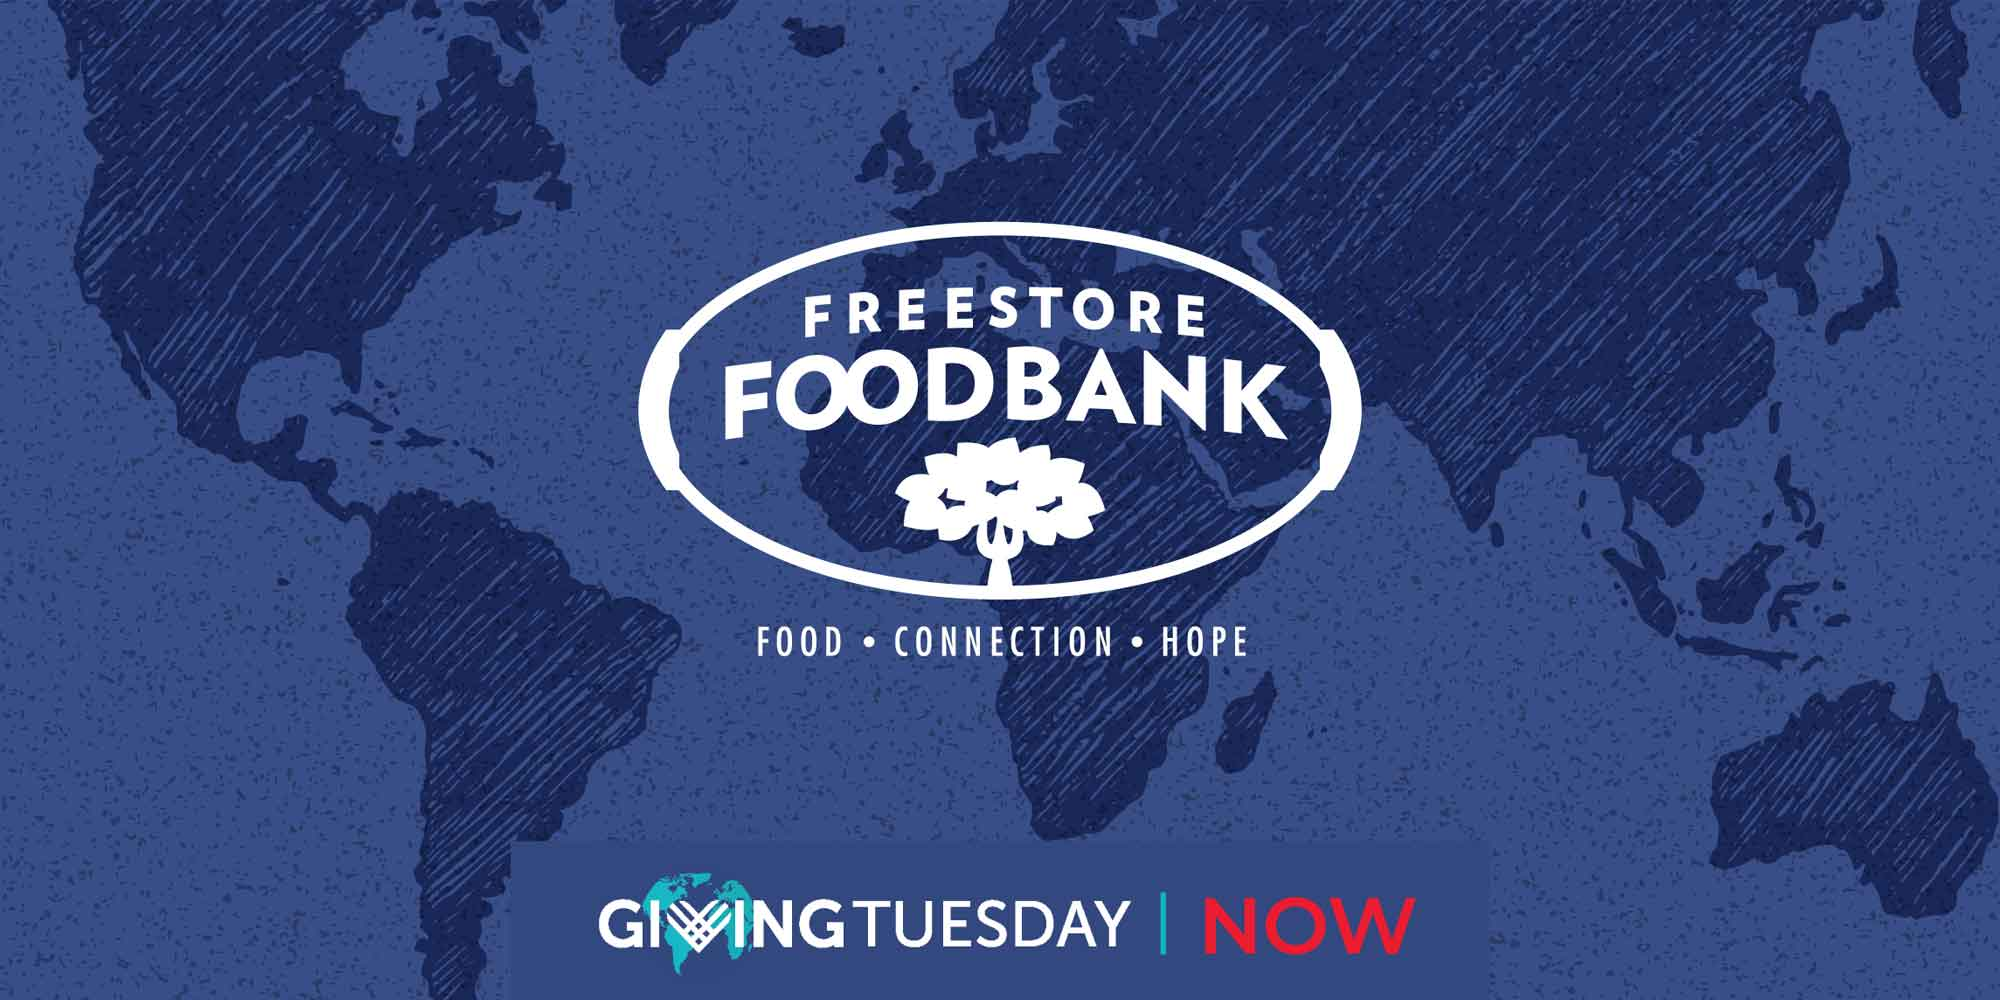 Giving Tuesday Now #GivingTuesdayNow